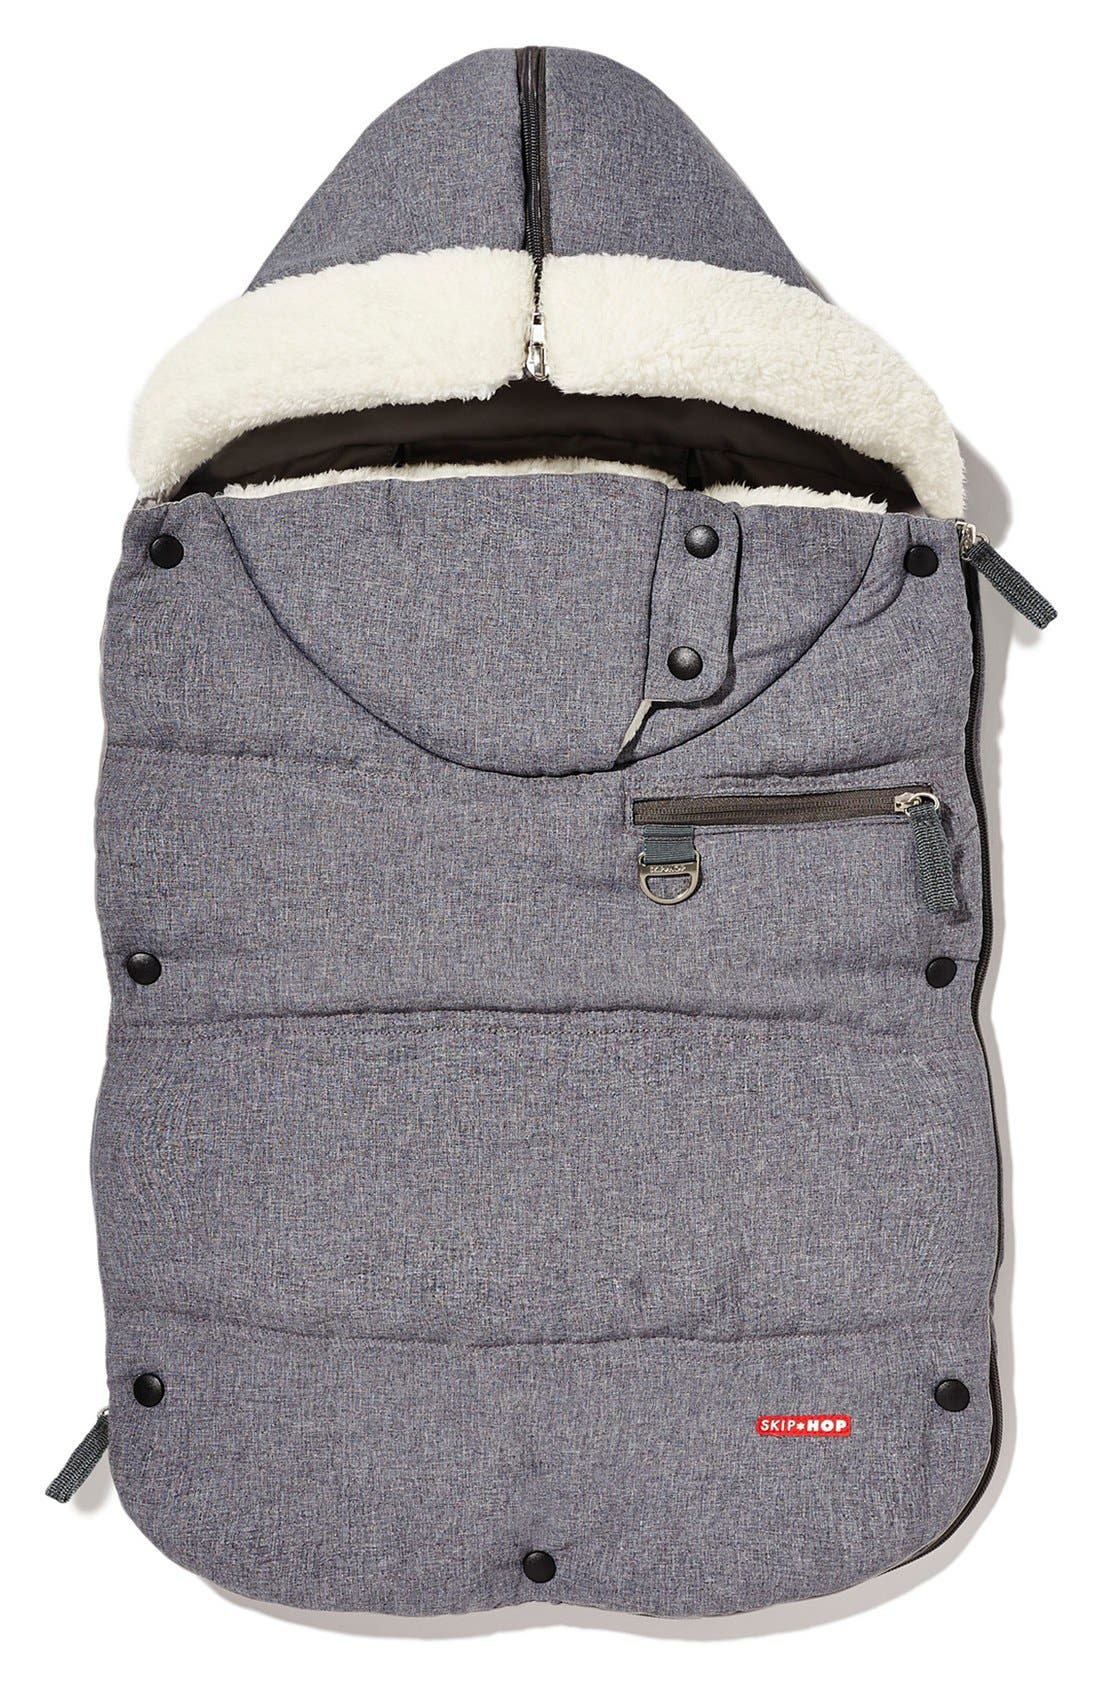 'Stroll & Go Three Season' Hooded Windproof & Water Resistant Footmuff,                             Main thumbnail 1, color,                             Heather Grey